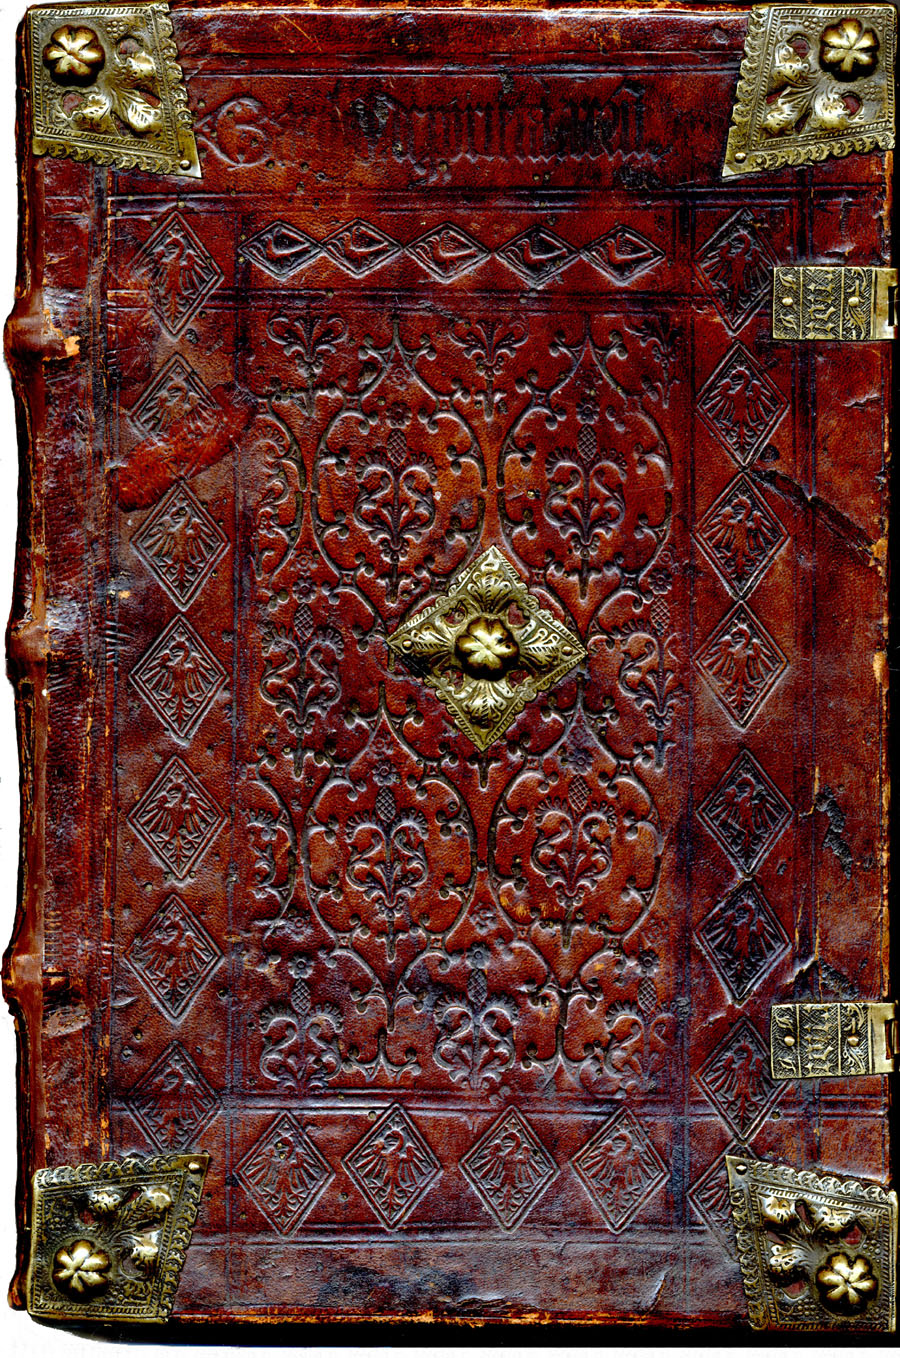 Leather Covered Book : Pin background how bookjpg on pinterest